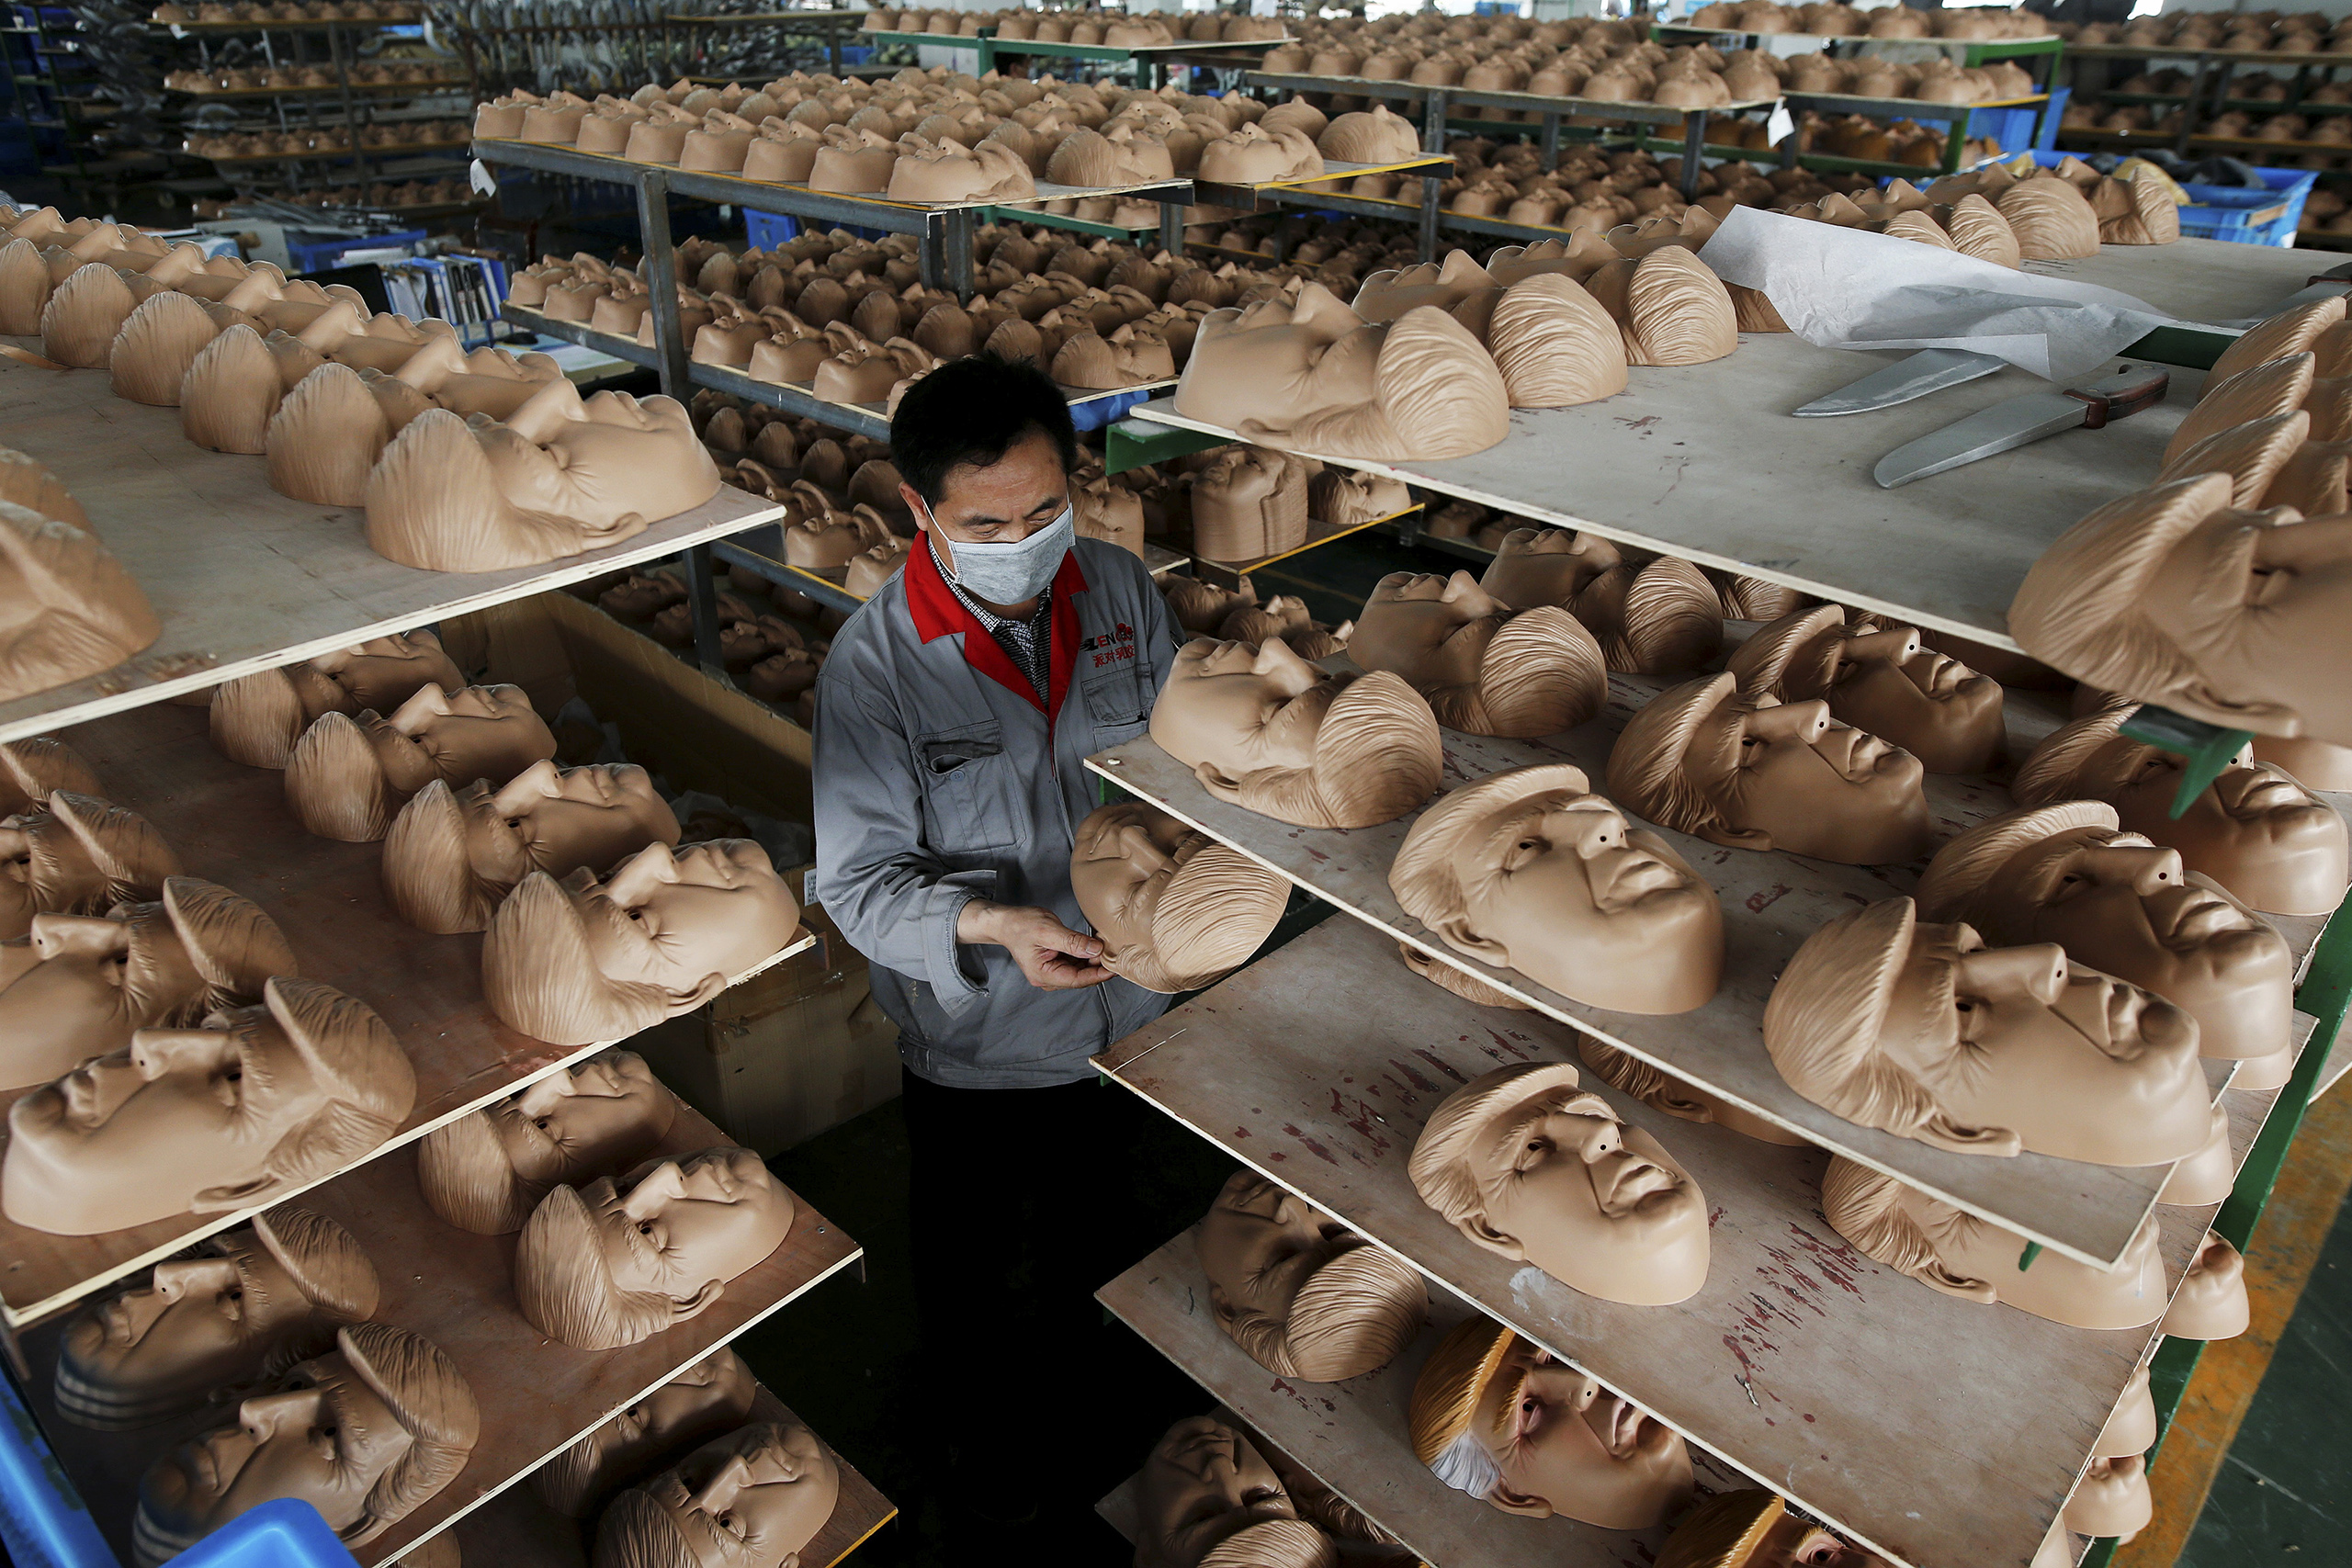 A worker checks a mask of Republican presidential candidate Donald Trump at Jinhua Partytime Latex Art and Crafts Factory in Jinhua, Zhejiang Province, China, May 25, 2016.